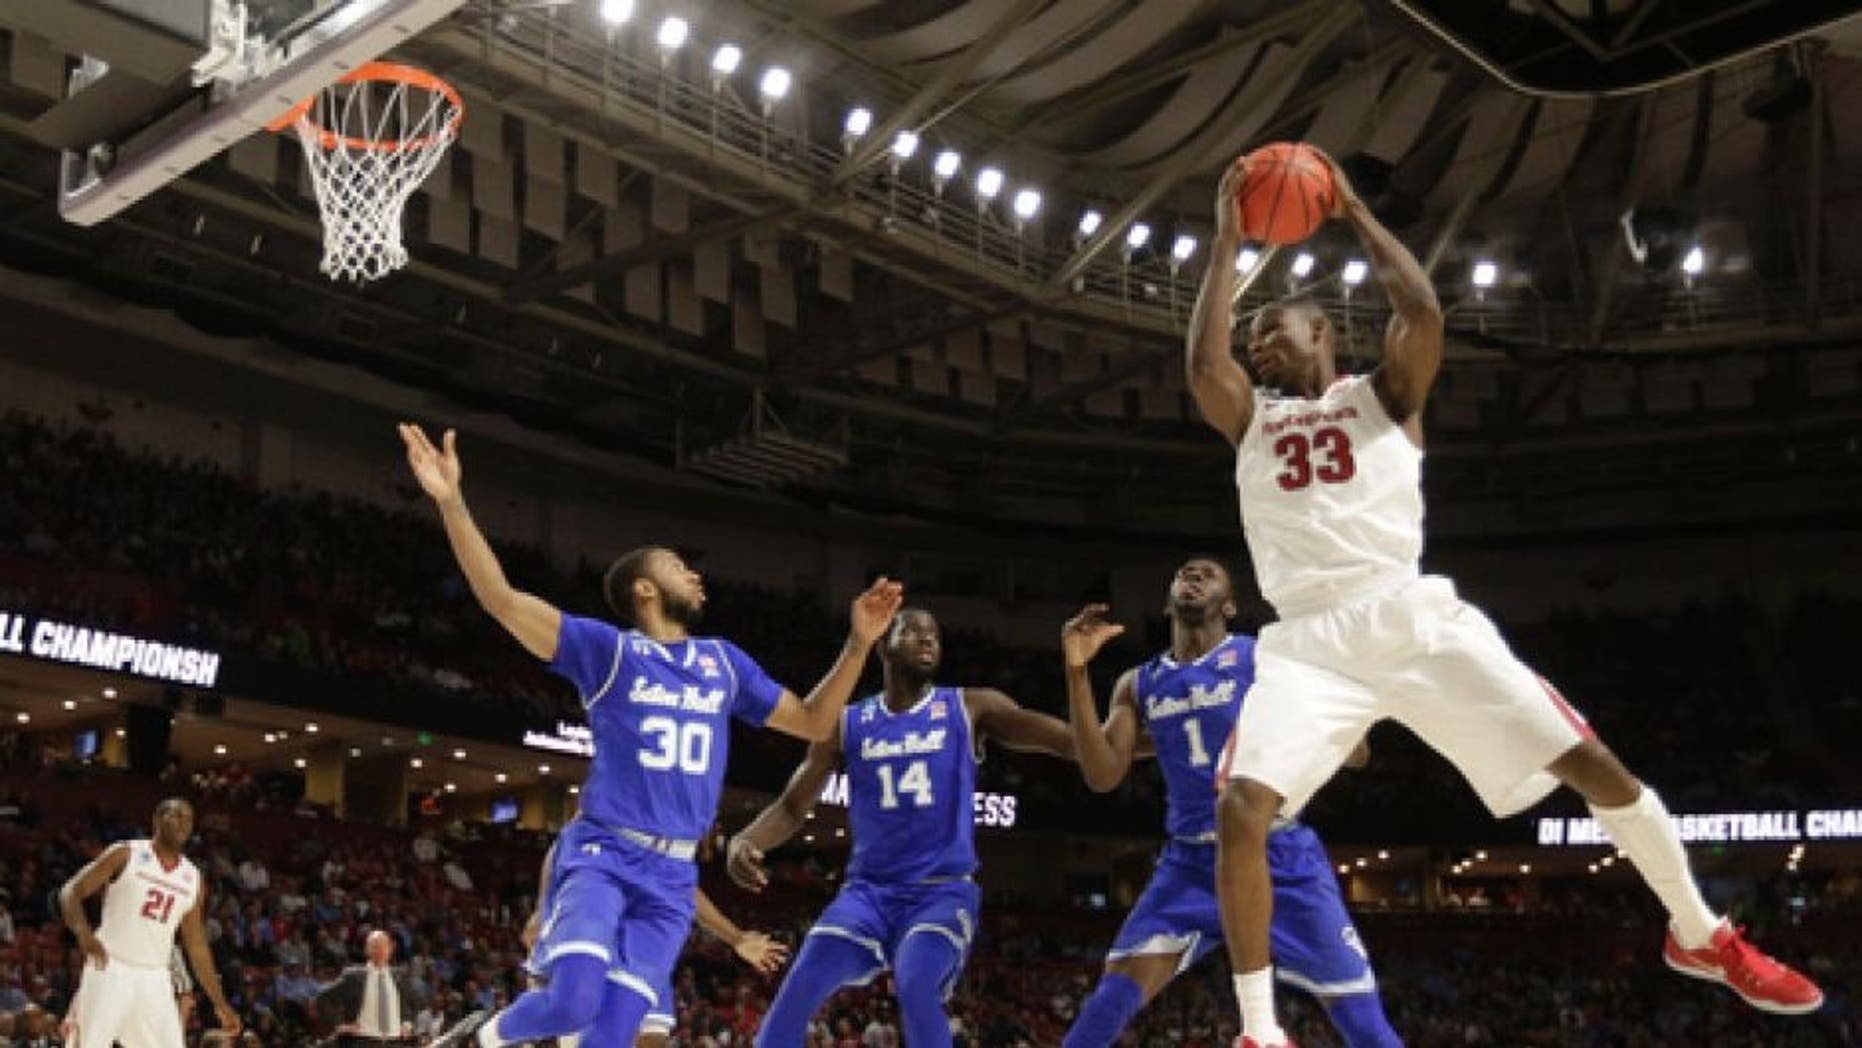 Arkansas's Moses Kingsley (33) grabs a rebound against Seton Hall players Madison Jones (30), Ismael Sanogo (14) and Michael Nzei (1) during the first half in a first-round game of the NCAA men's college basketball tournament in Greenville, S.C., Friday, March 17, 2017. (AP Photo/Chuck Burton)